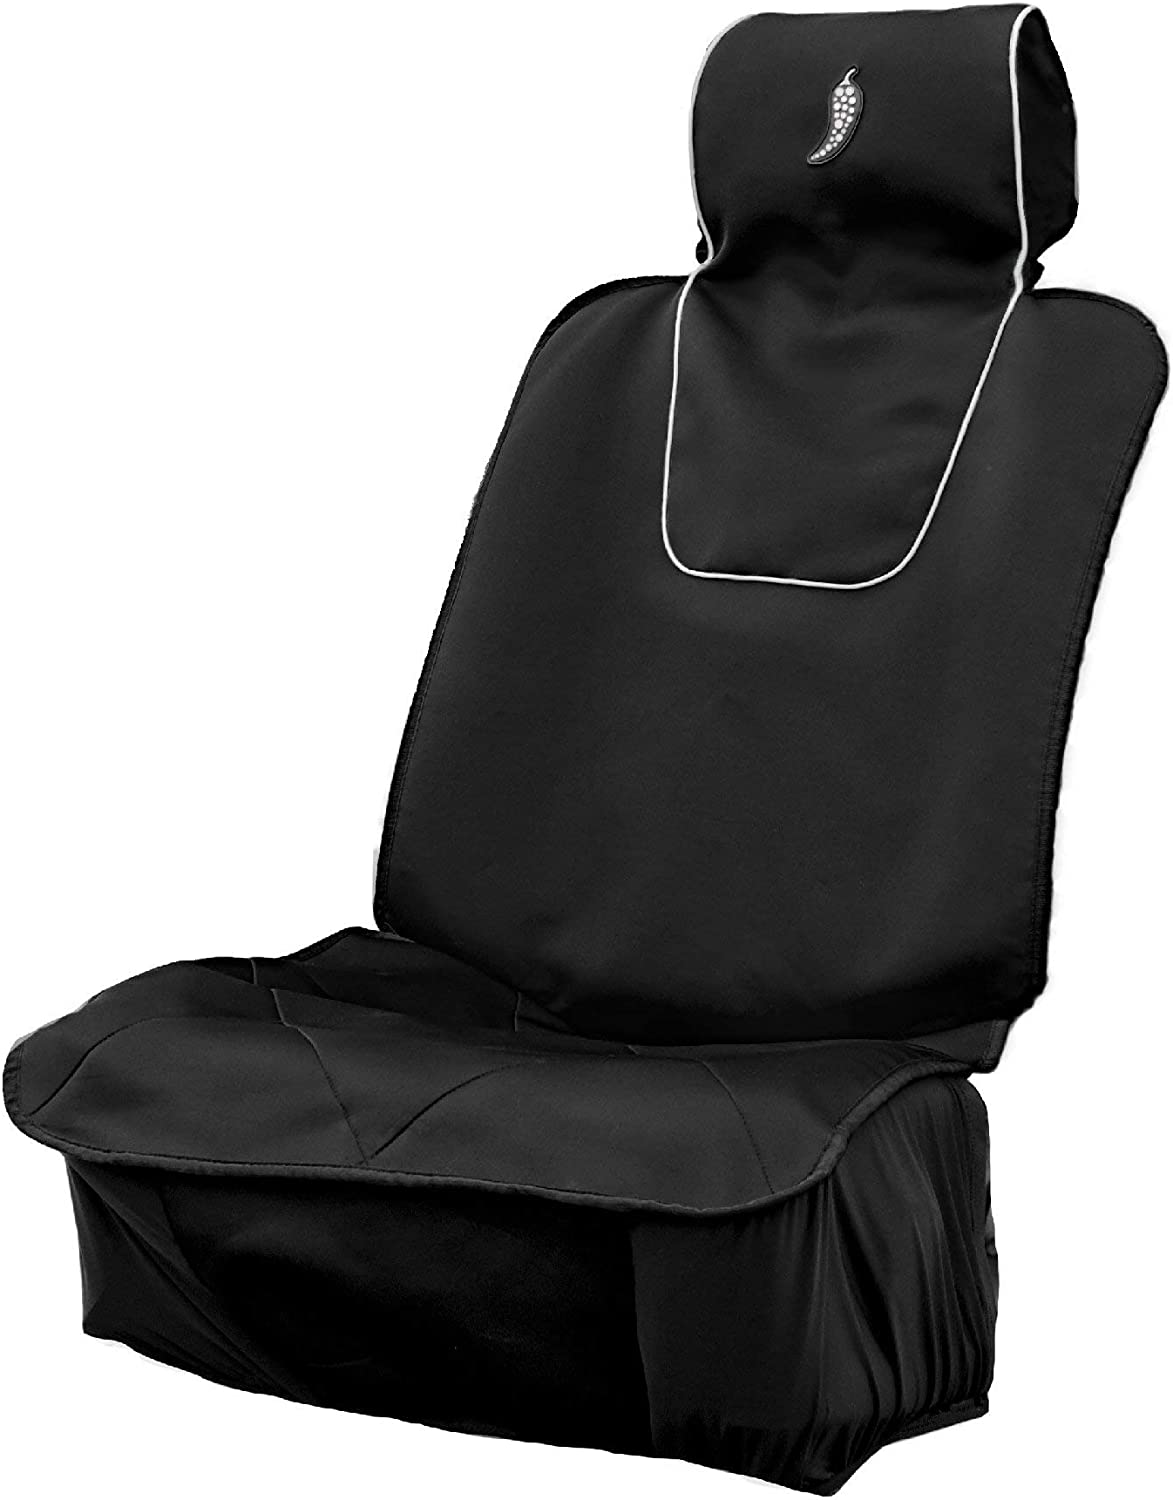 Machine Washable Perfect for Running Crossfit Red Chili Universal Fit Dry Rub Medium Sweat Proof Car Seat Cover After Gym and Outdoor Activities Drawstring Bag Included